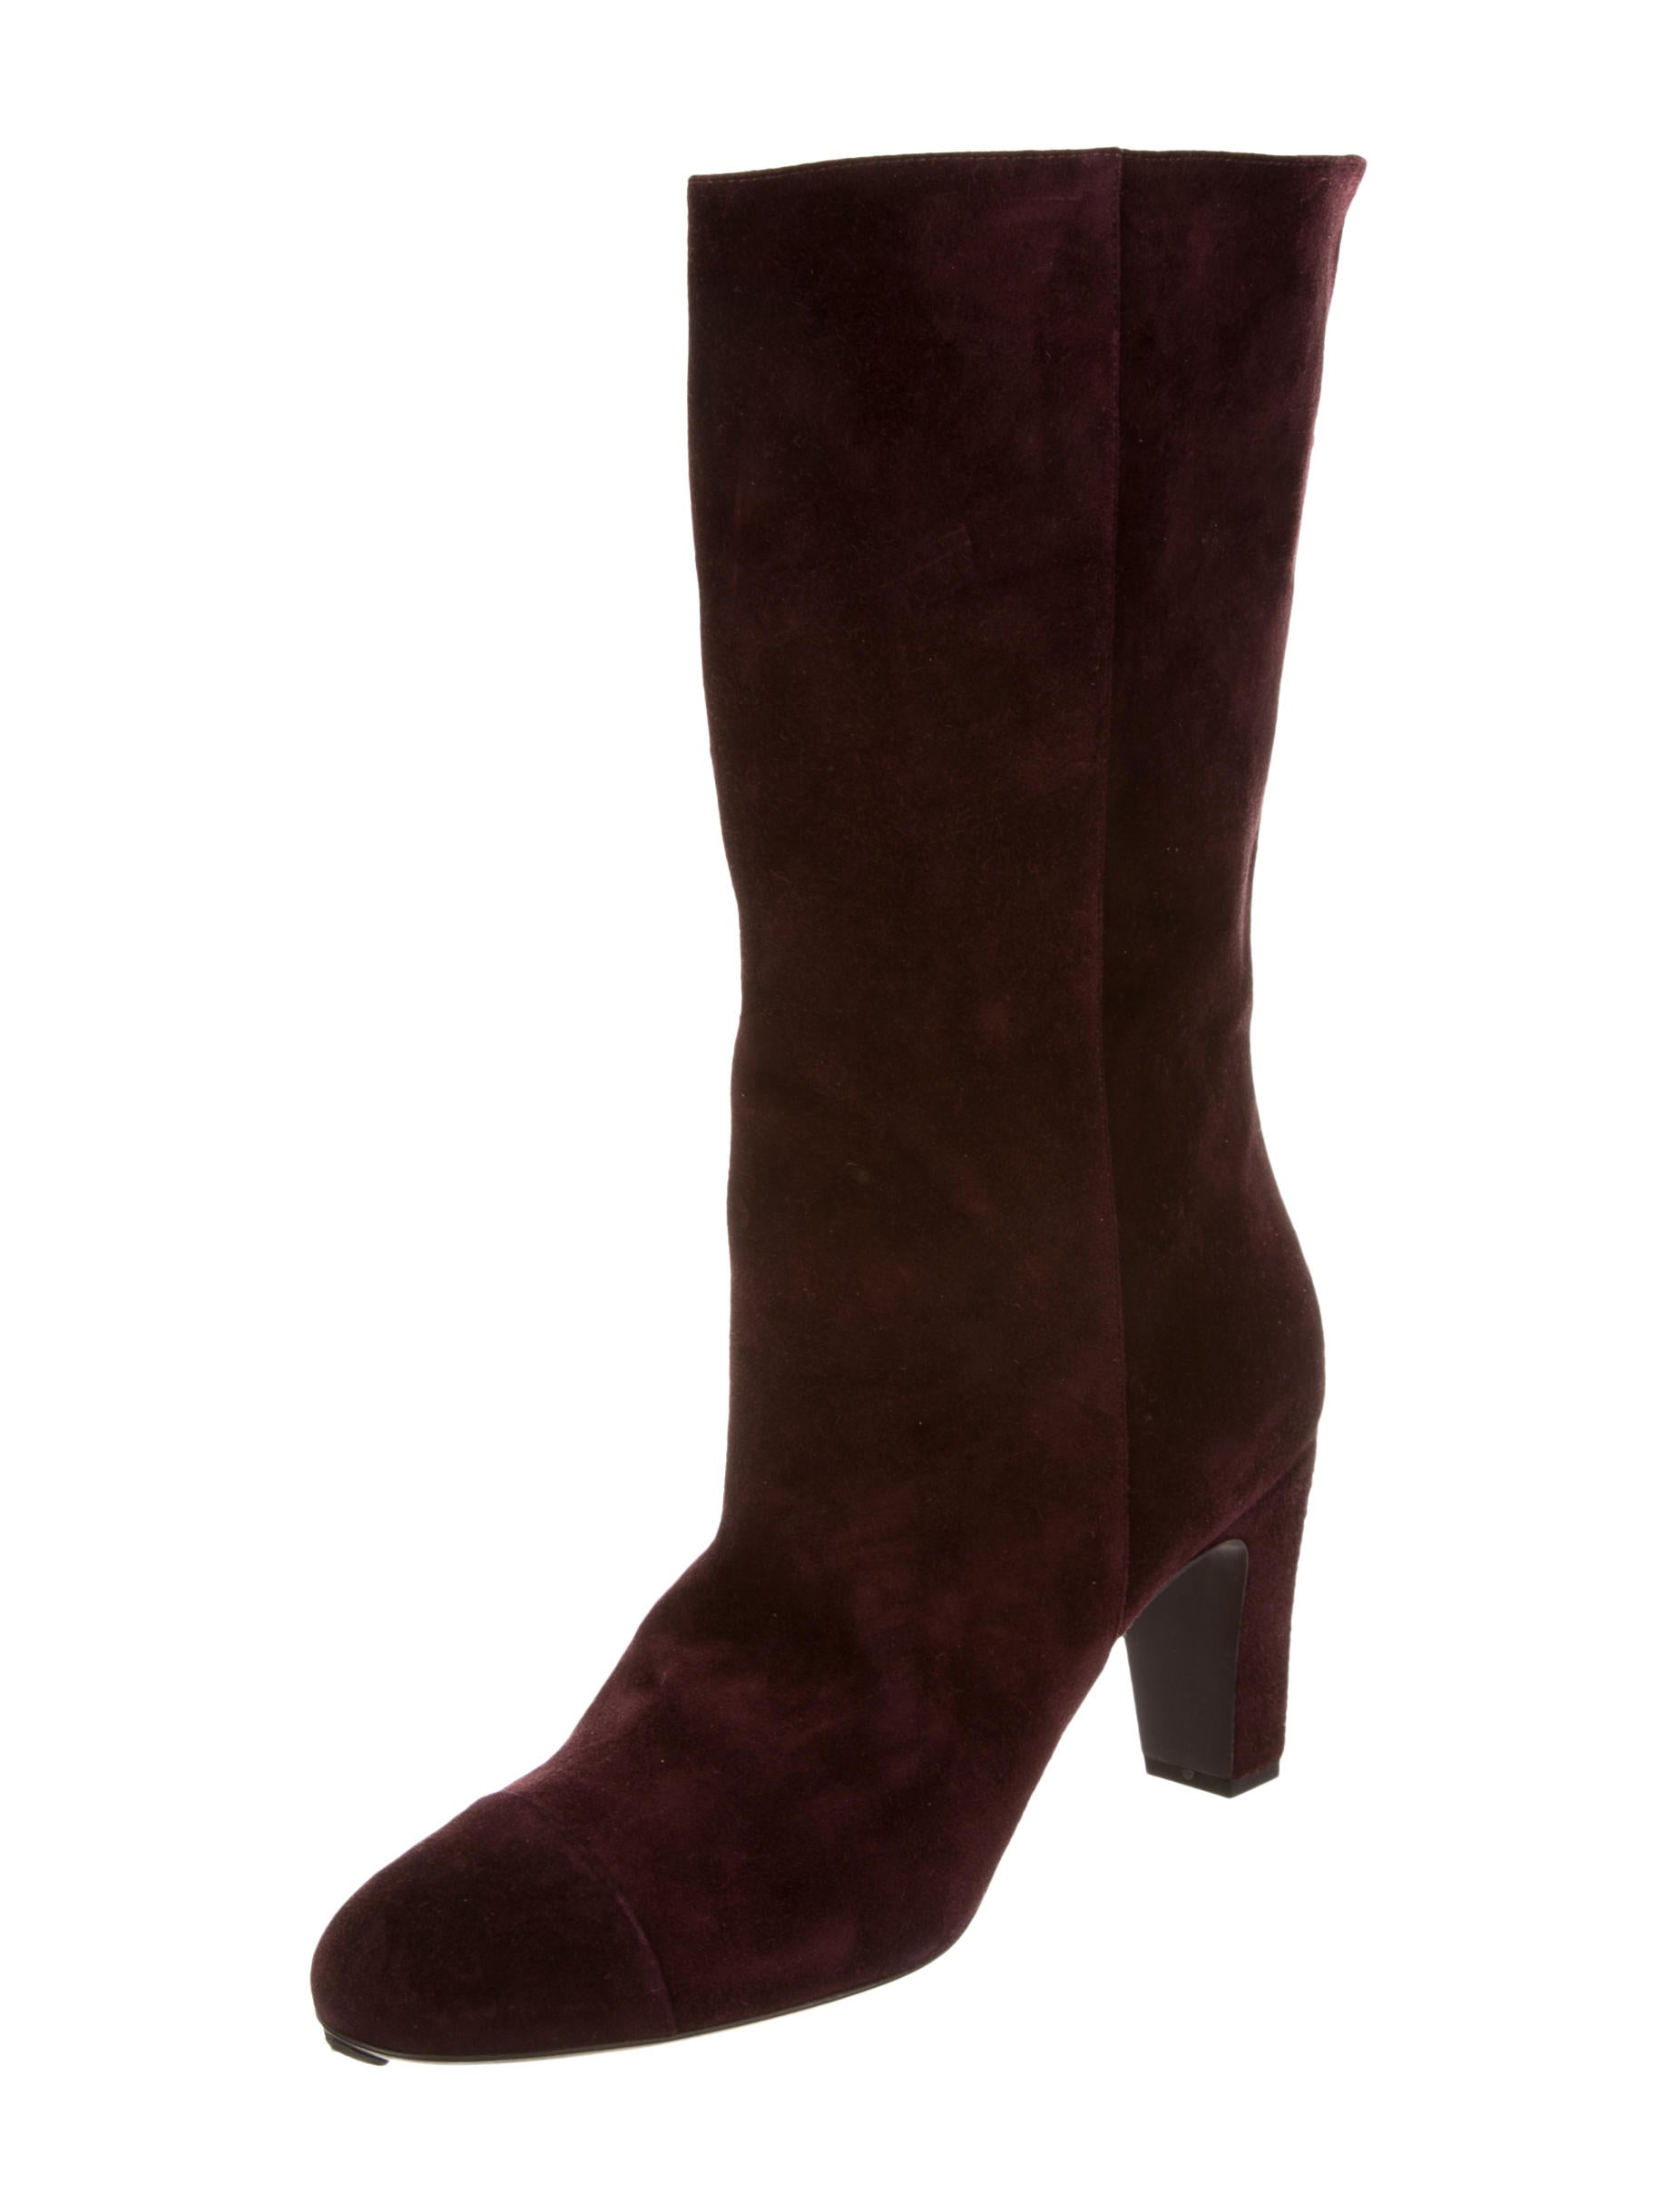 chanel suede knee high boots shoes cha137182 the